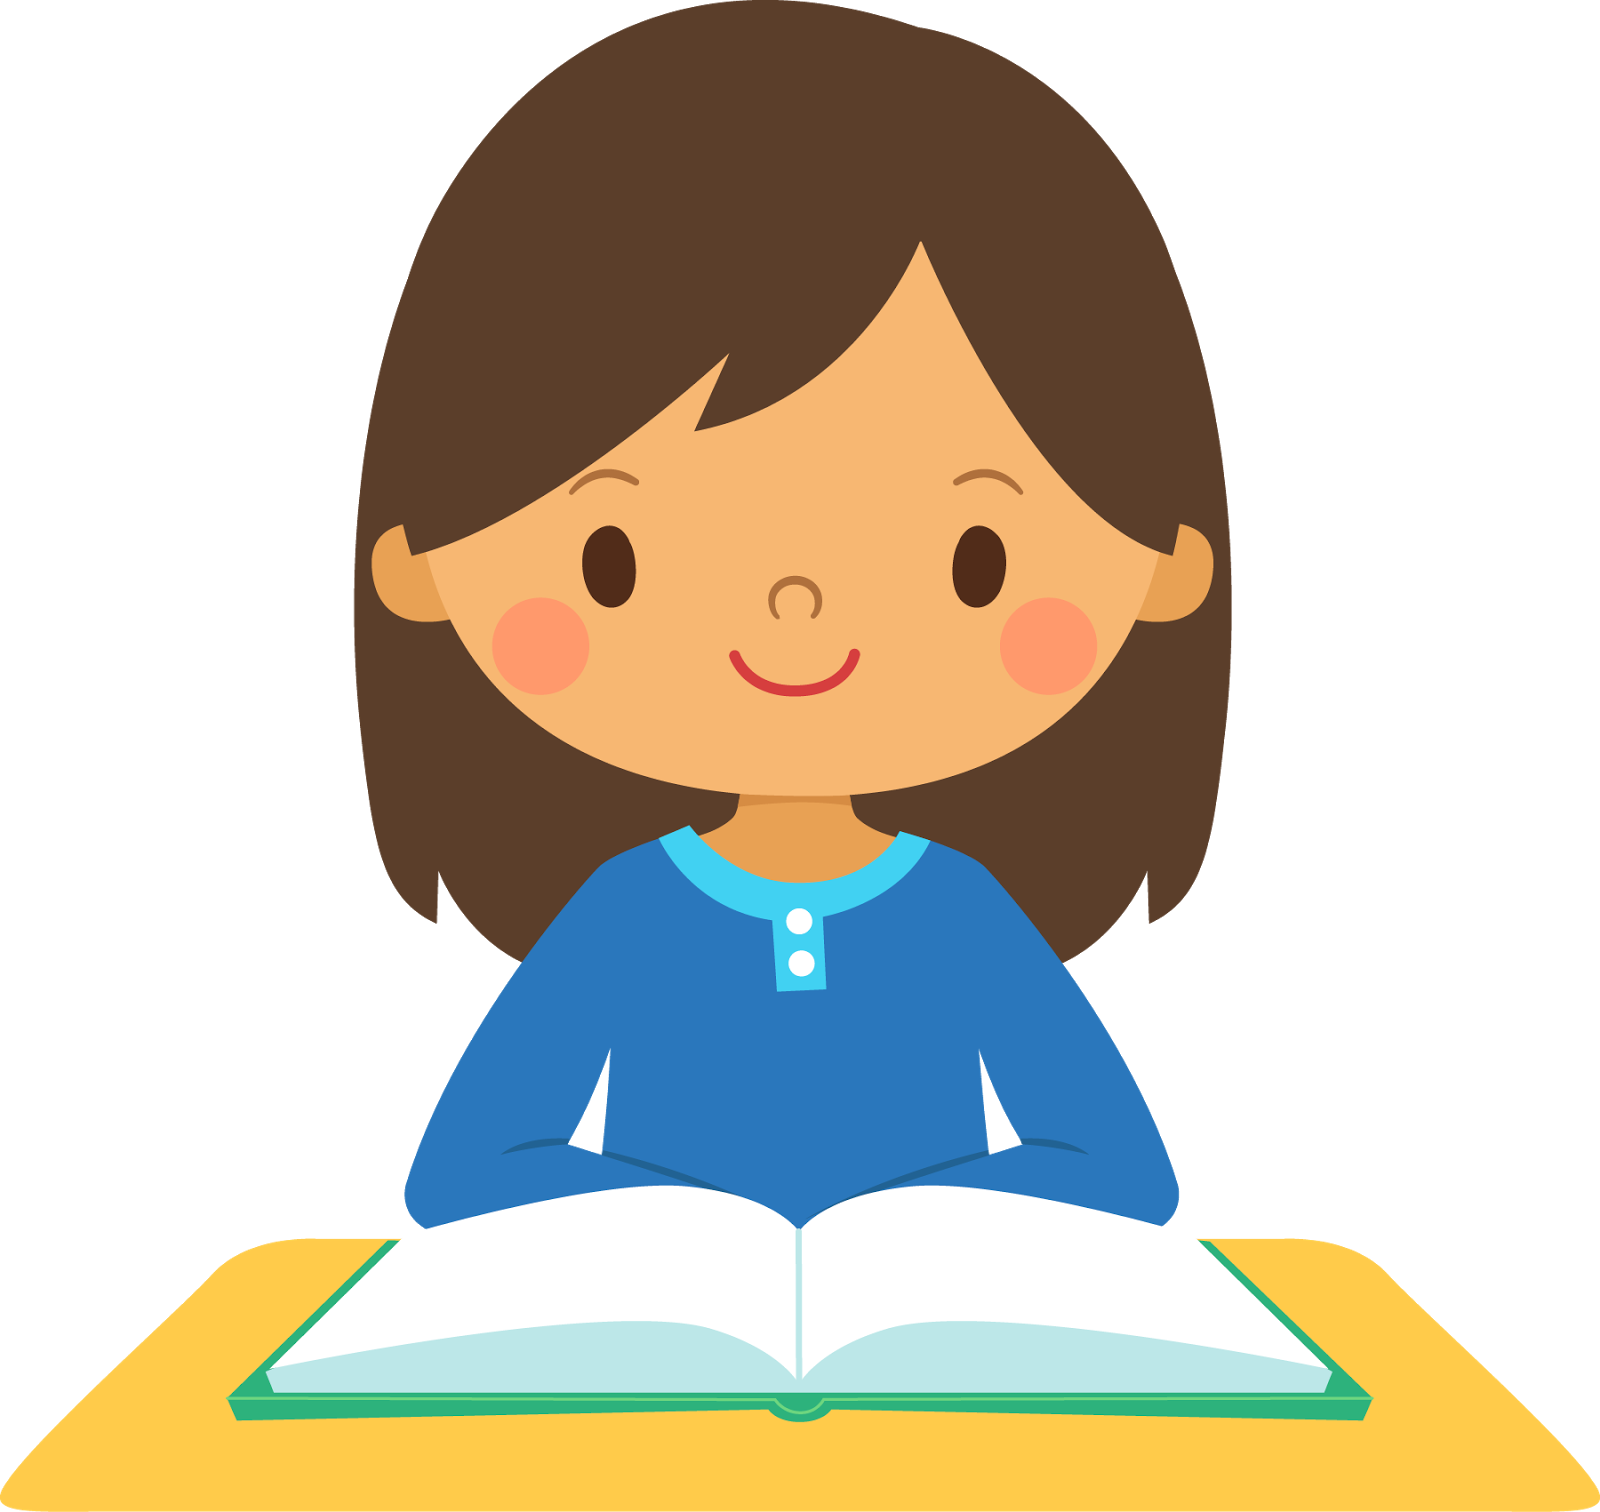 Load Up Your Tpt Wish List - A Girl Clipart